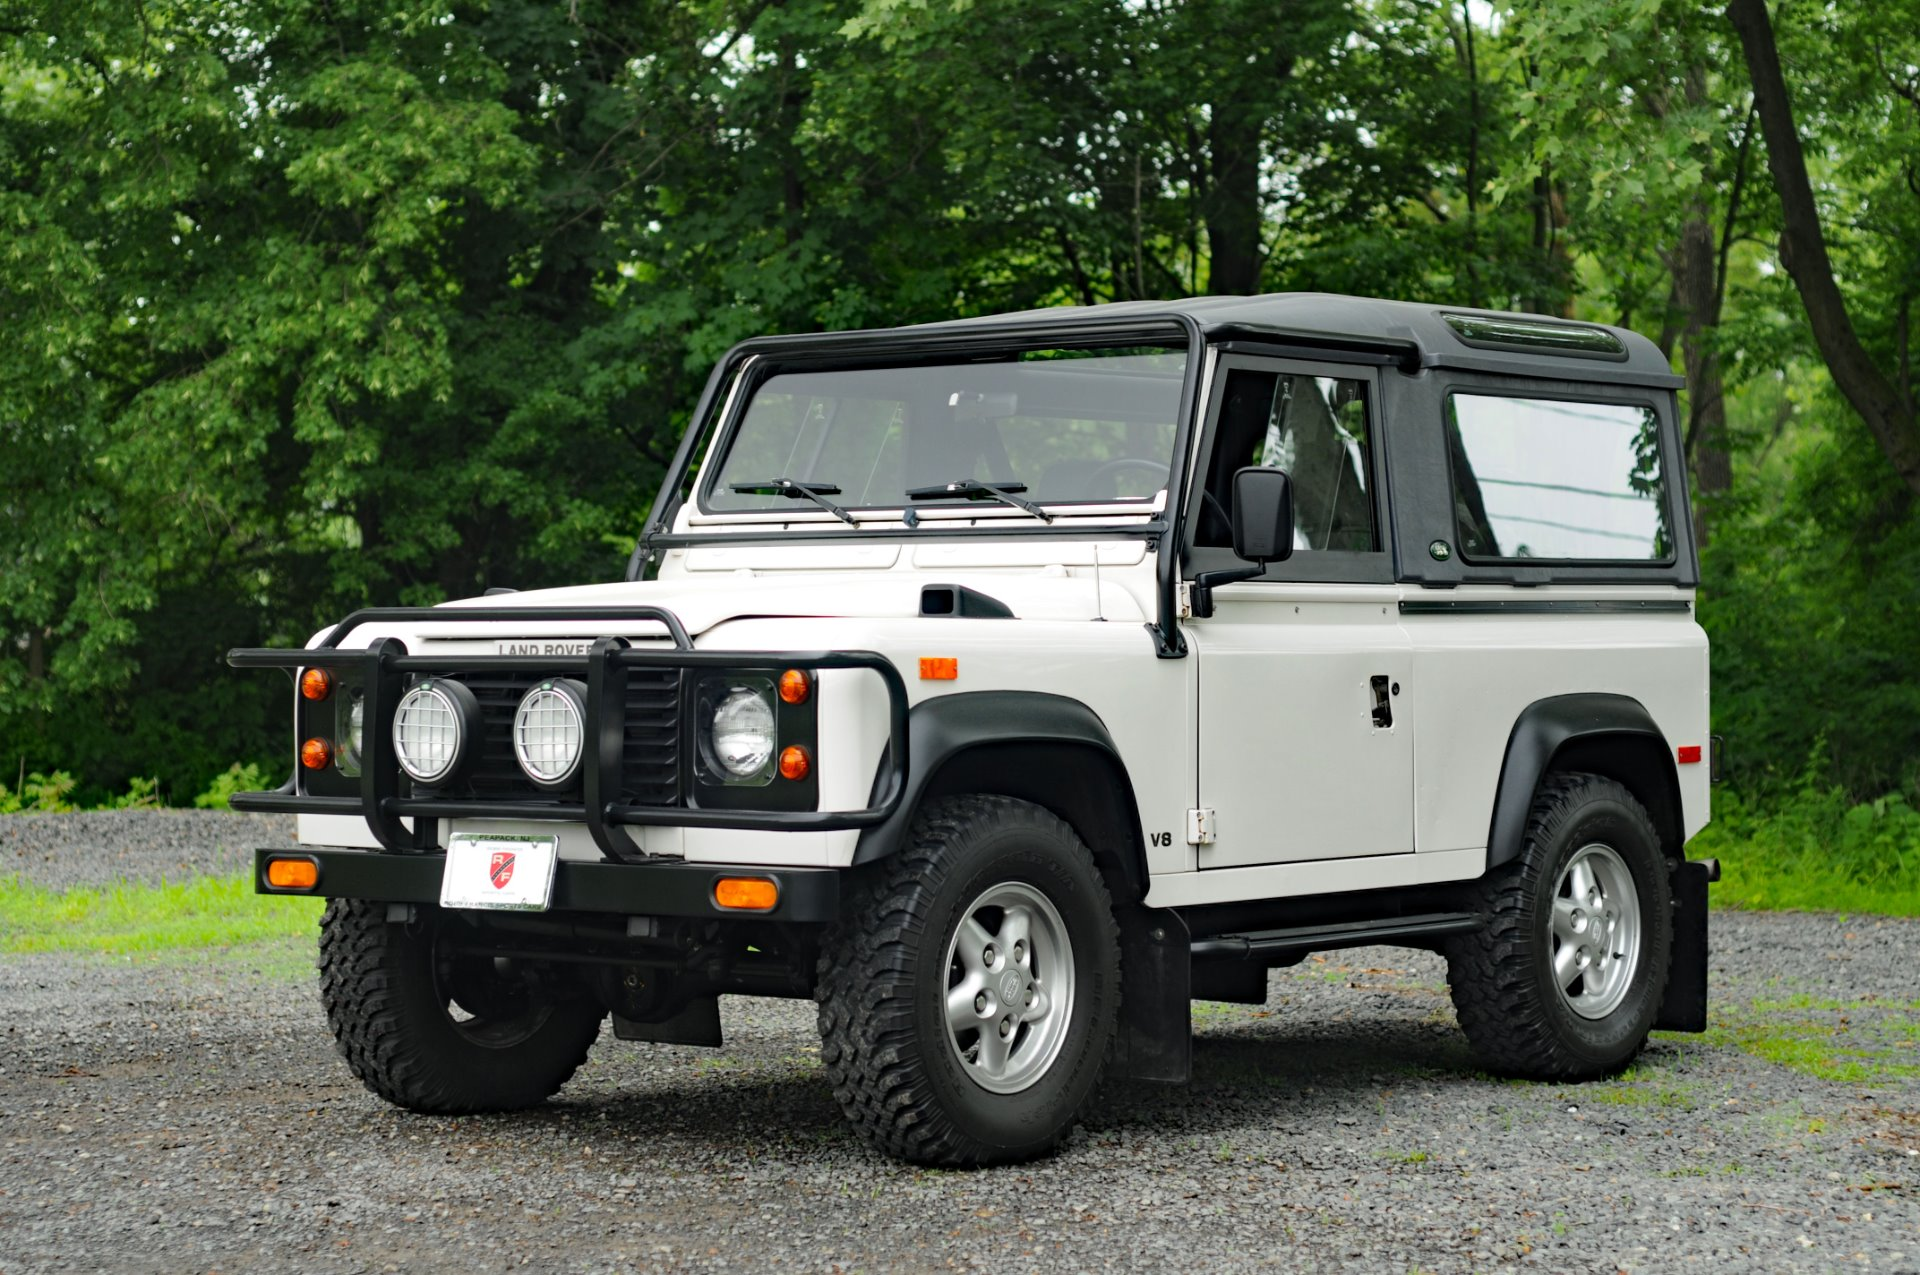 1994 land rover defender 90 stock # 2425 for sale near peapack, nj